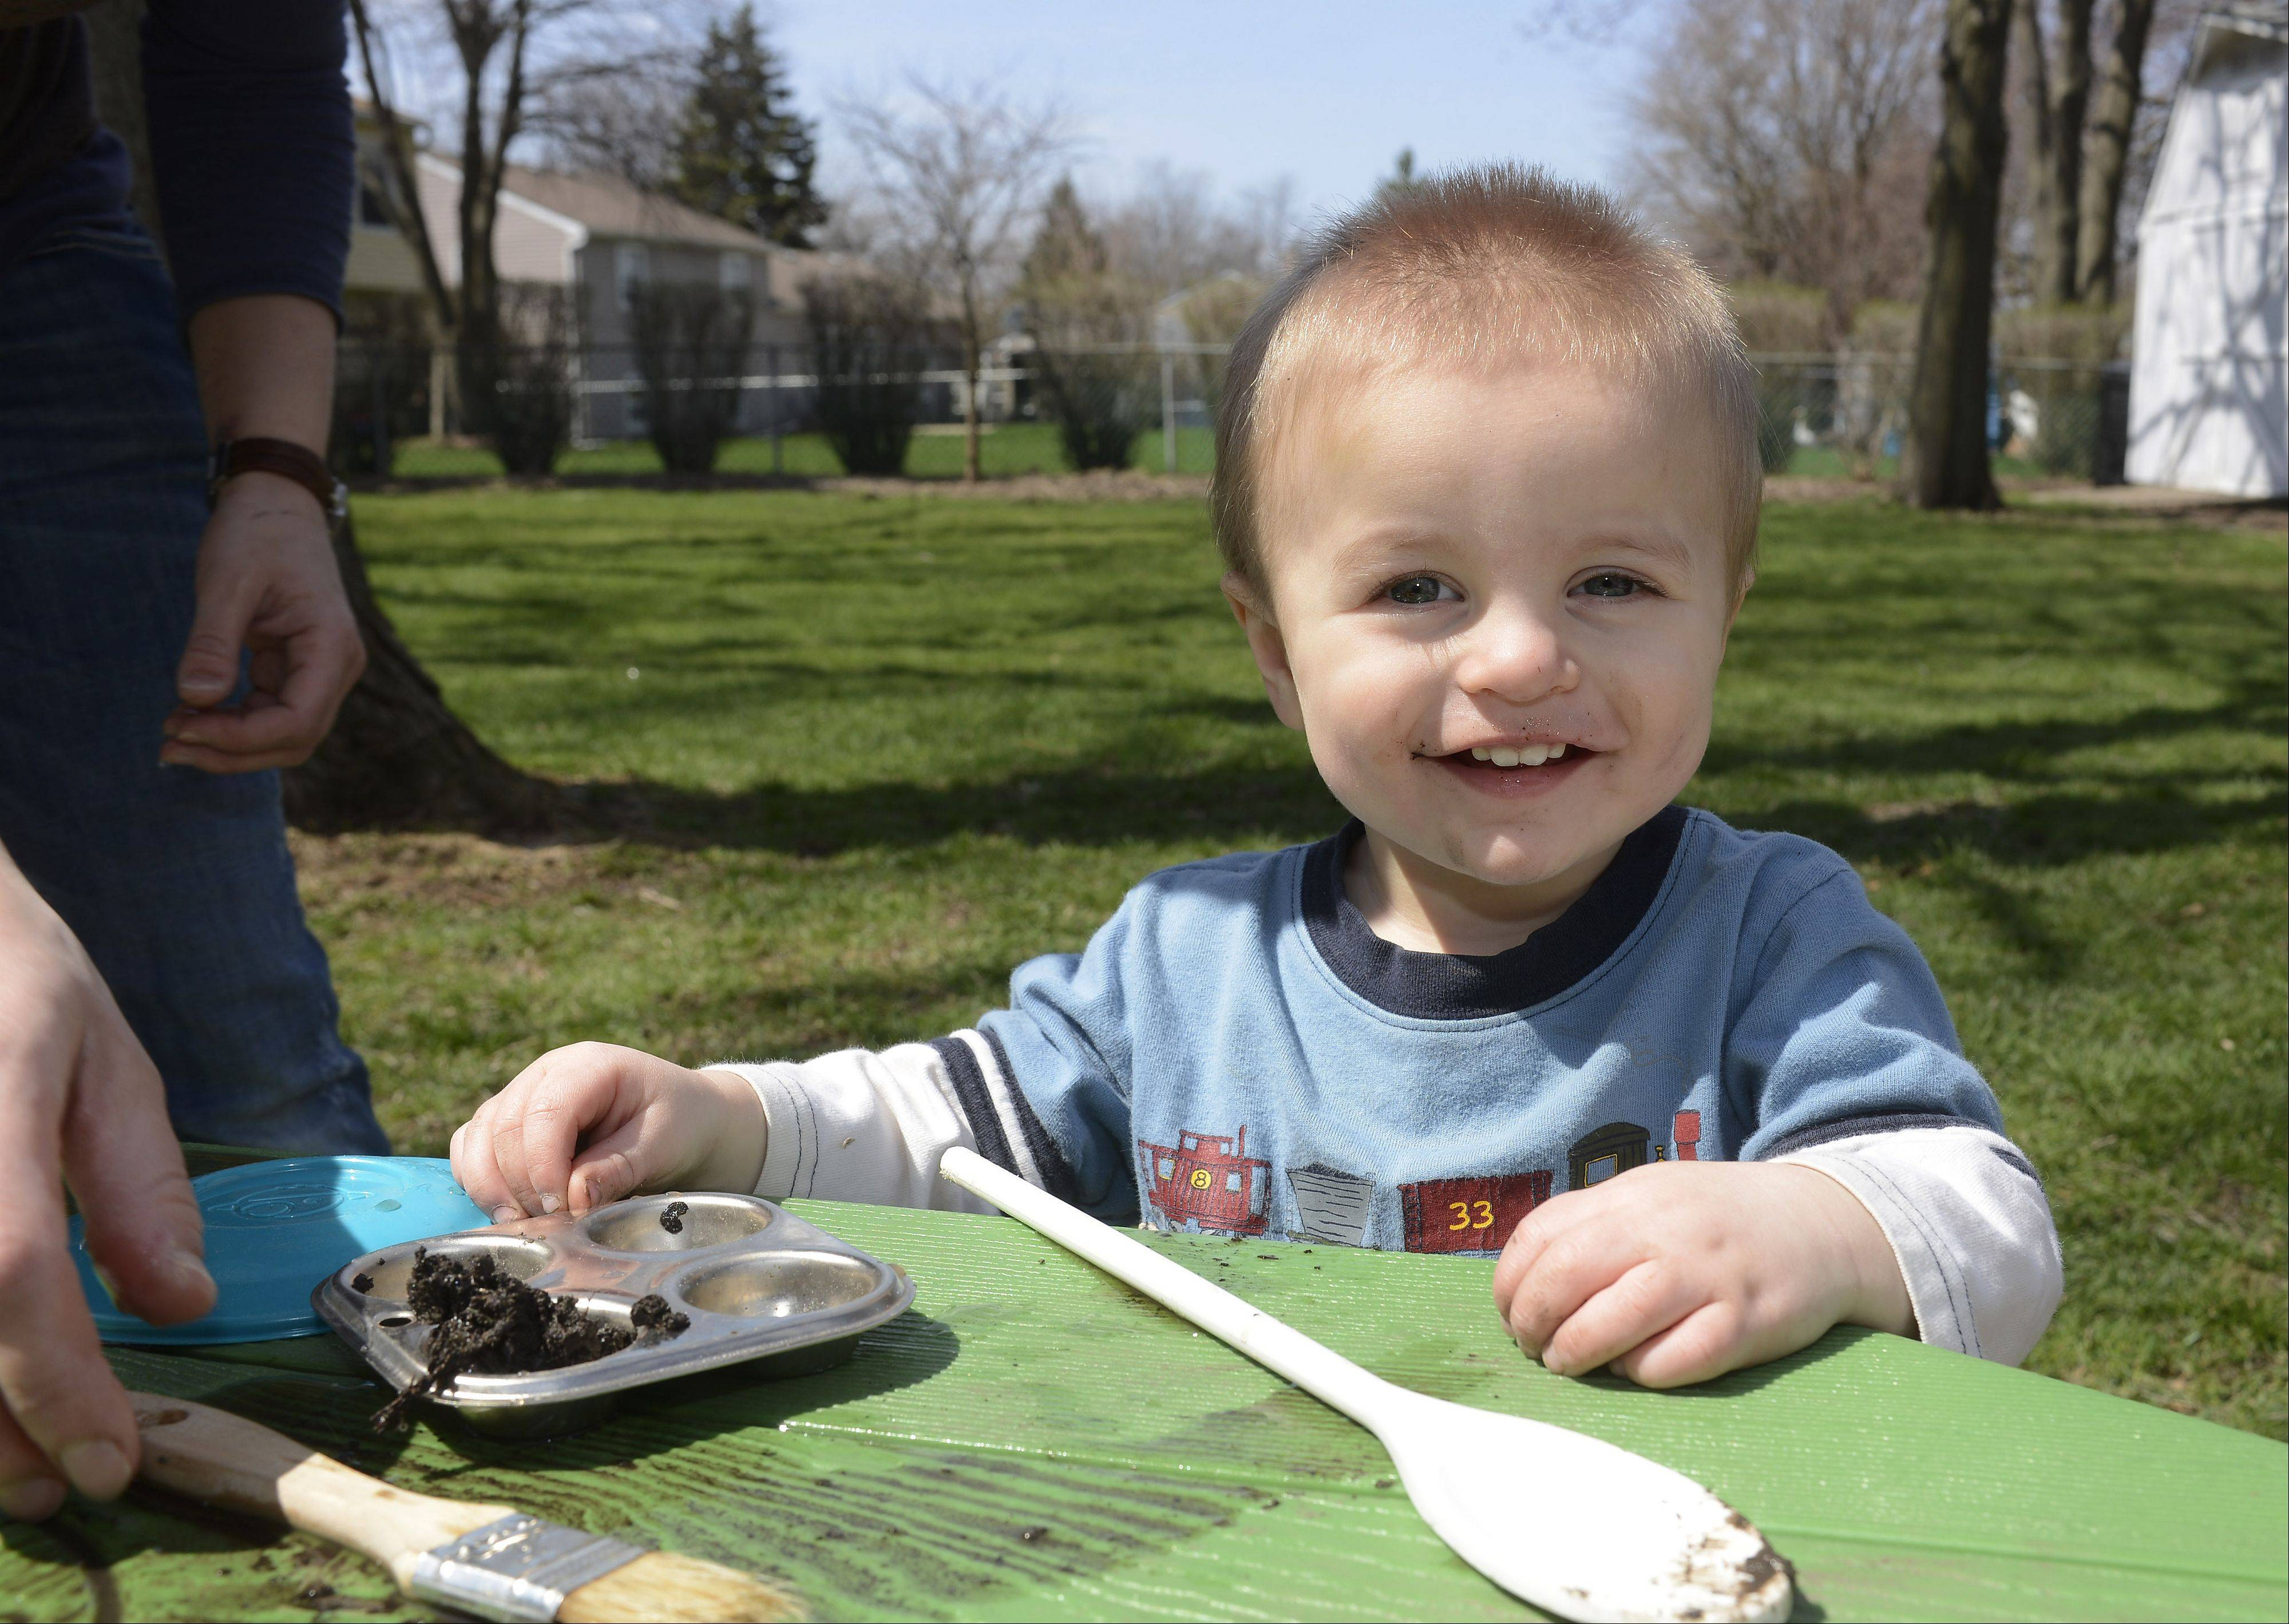 Benjamin Anderson, 1, plays with mud in a baking tin at his parent's Schaumburg home.